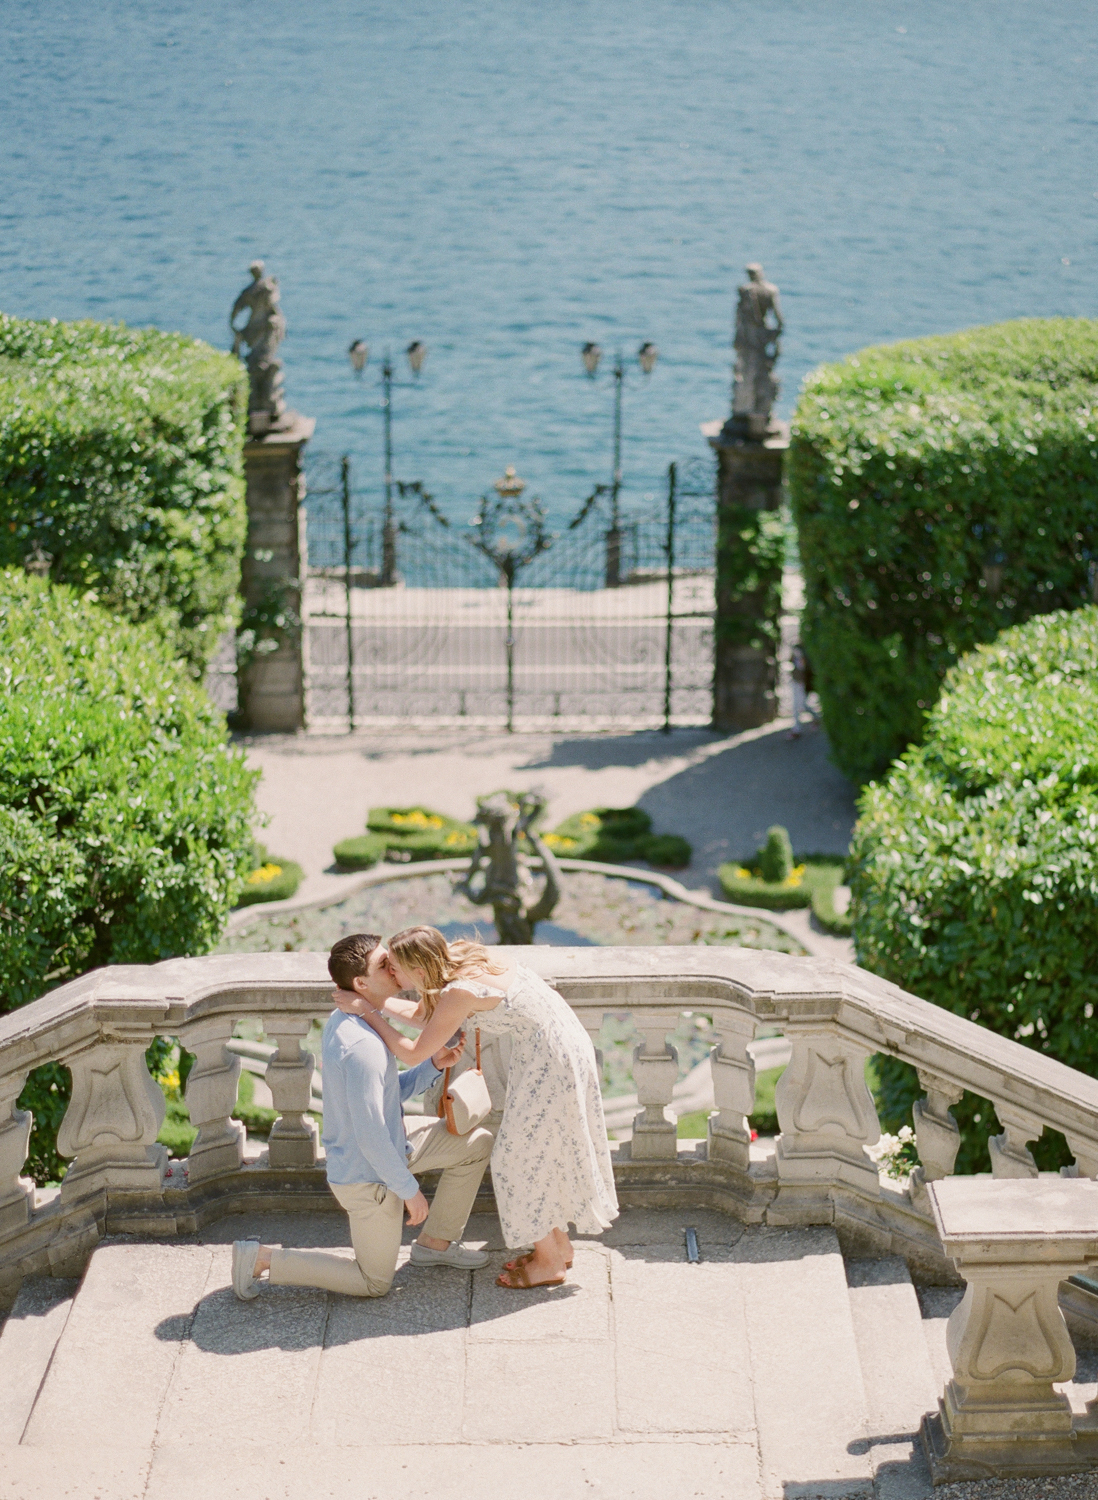 lake como film wedding photographer italy wedding photographer nikol bodnarova photography 18.JPG